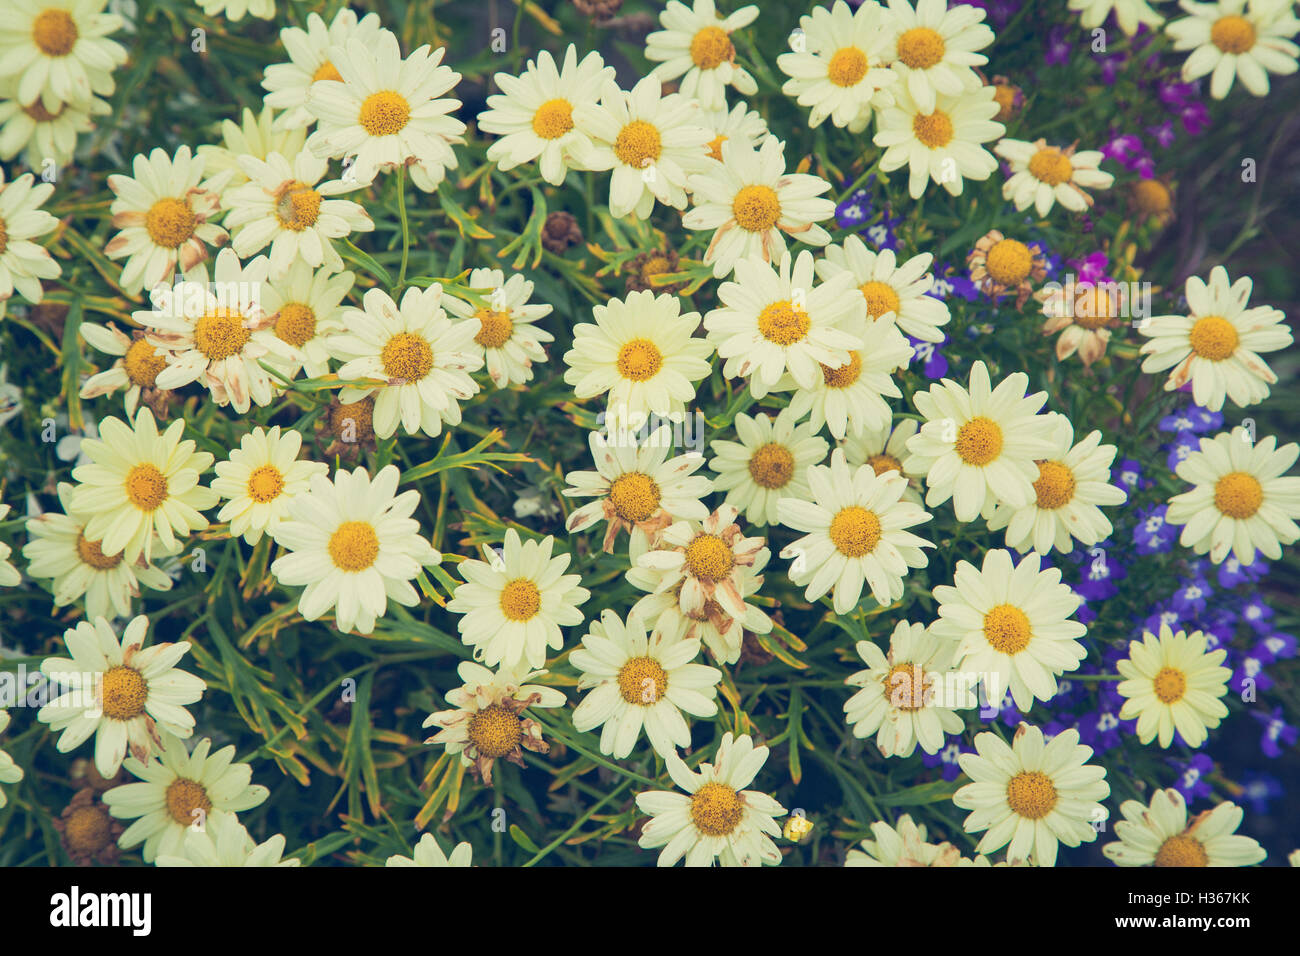 Close up of daisies with vintage tones added - Stock Image